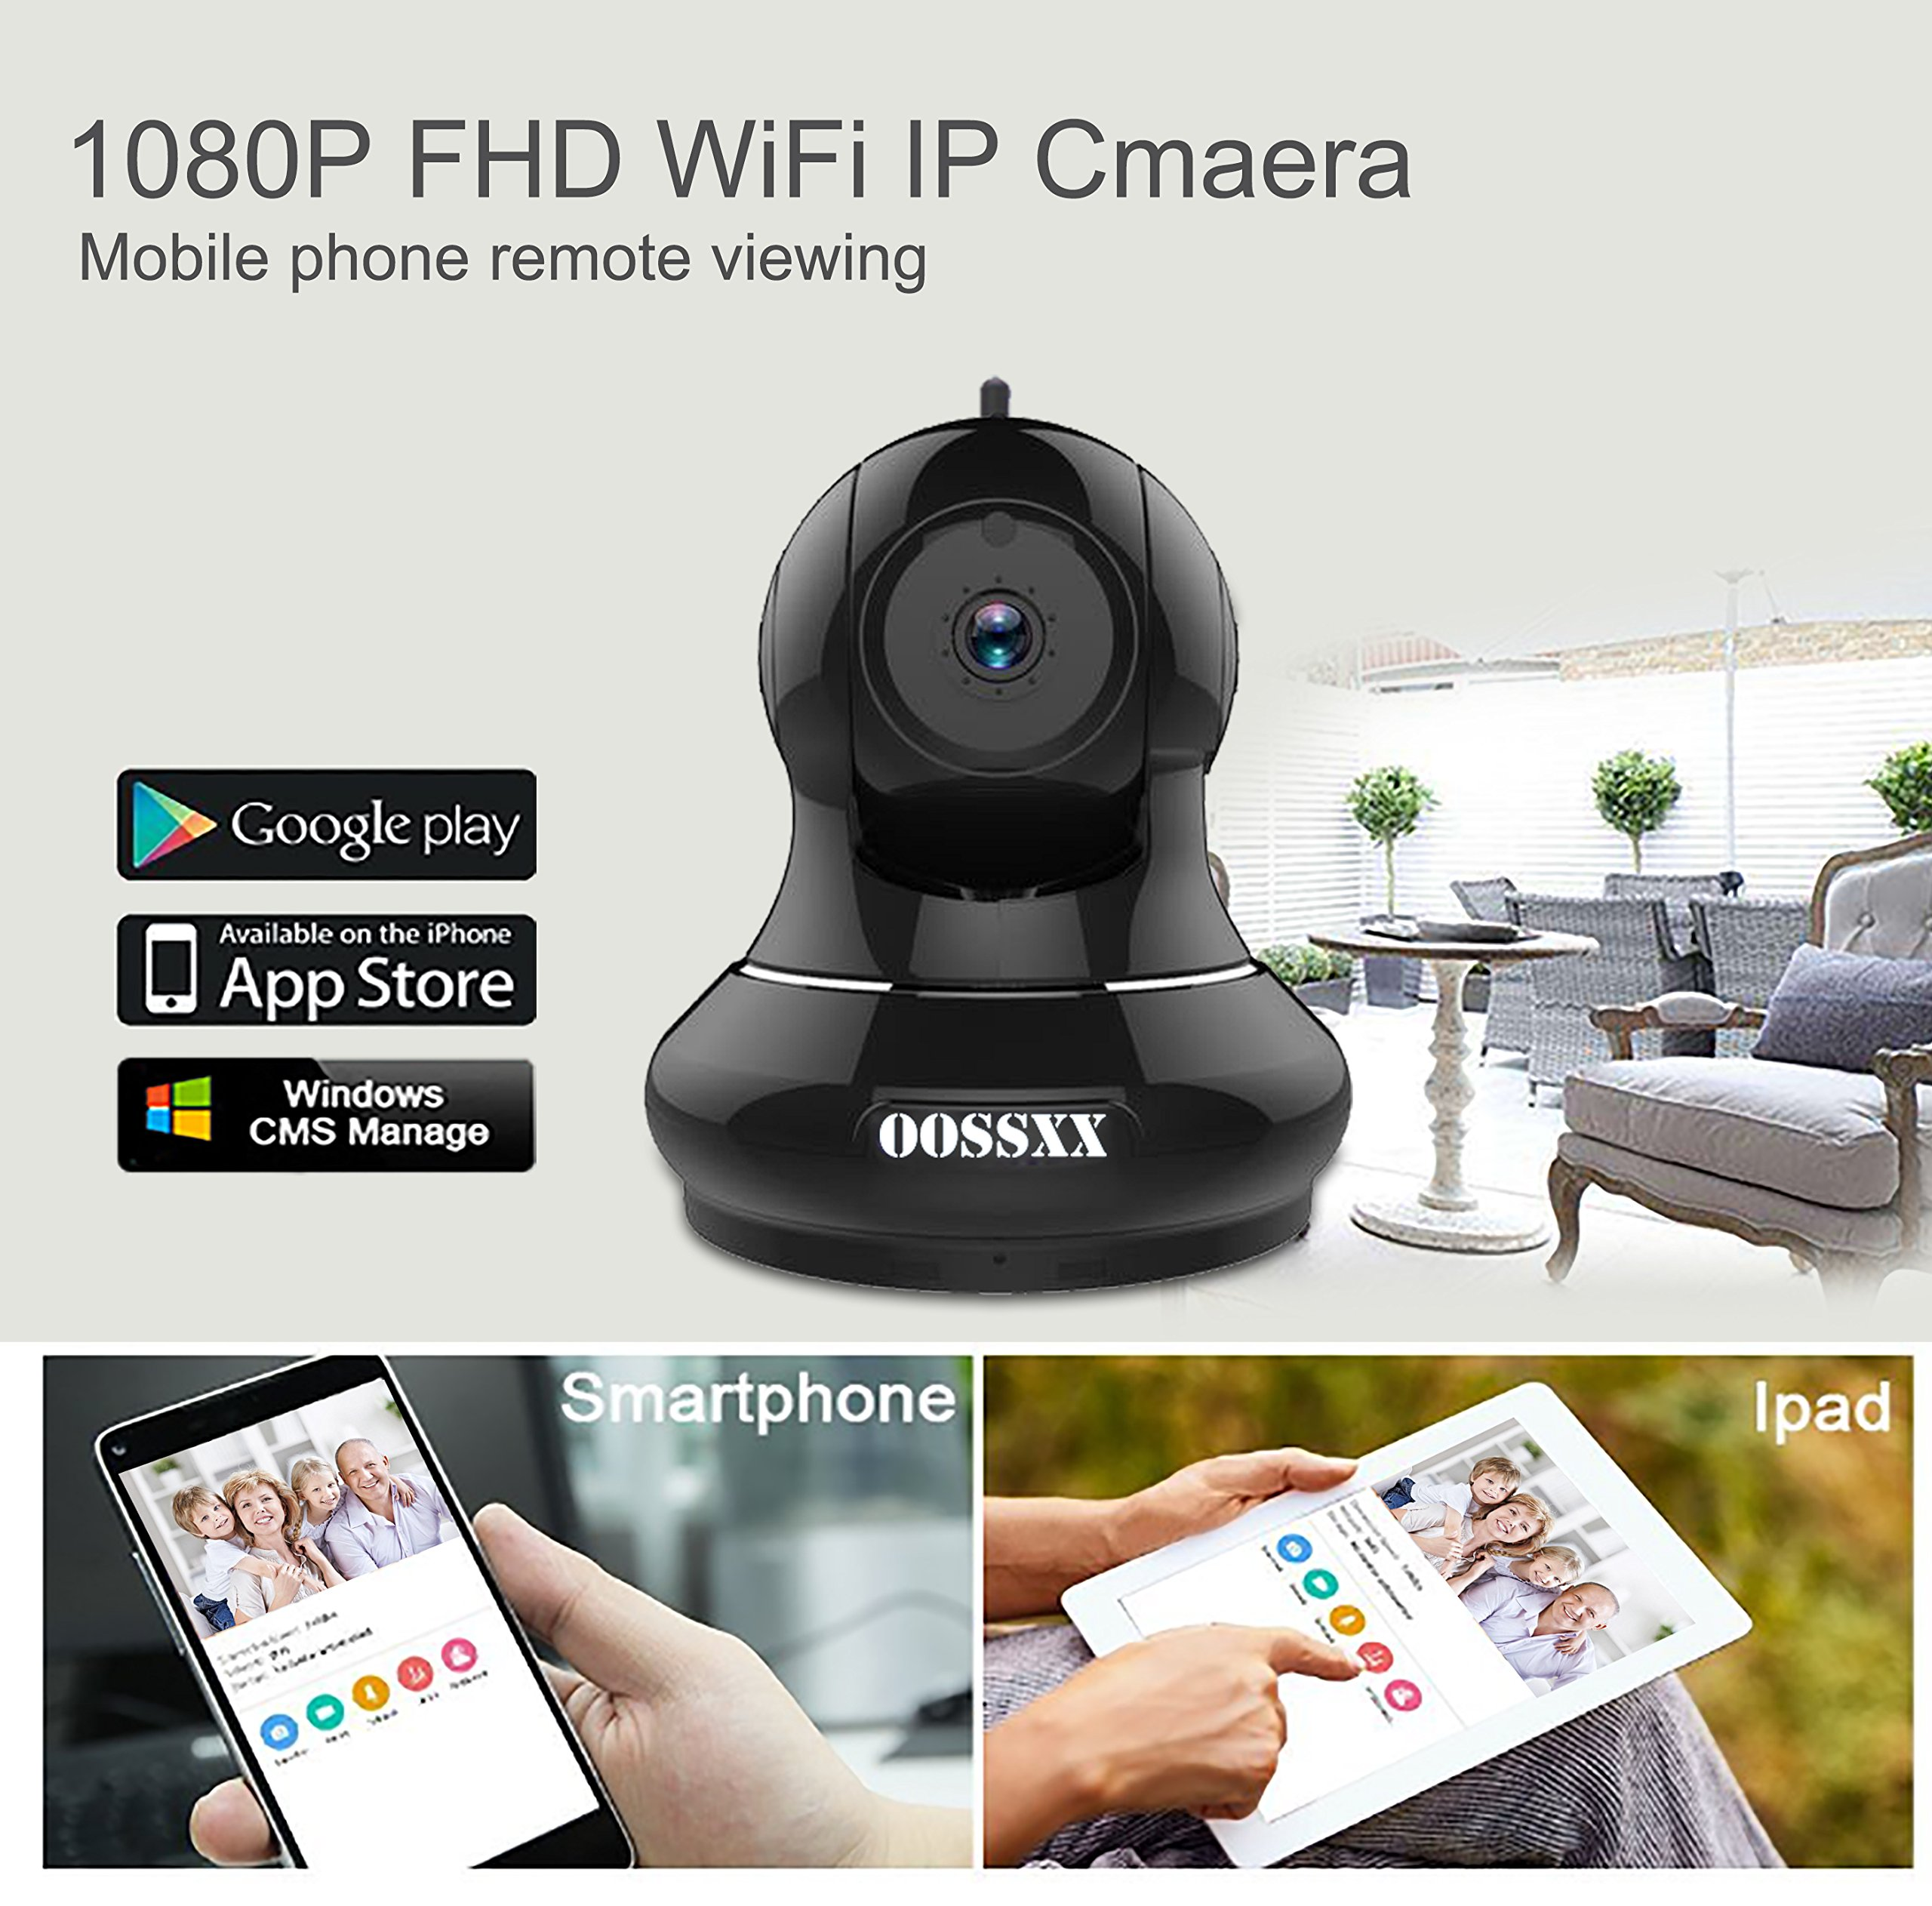 1080P Home/Business Wireless IP Camera, OOSSXX HD Indoor Wireless Security Camera with Motion Detection, Two Way Audio, Pan/Tilt, Night Vision, Multi camera preview,for Baby Monitor, Nanny Cam,Pet Cam by OOSSXX (Image #2)